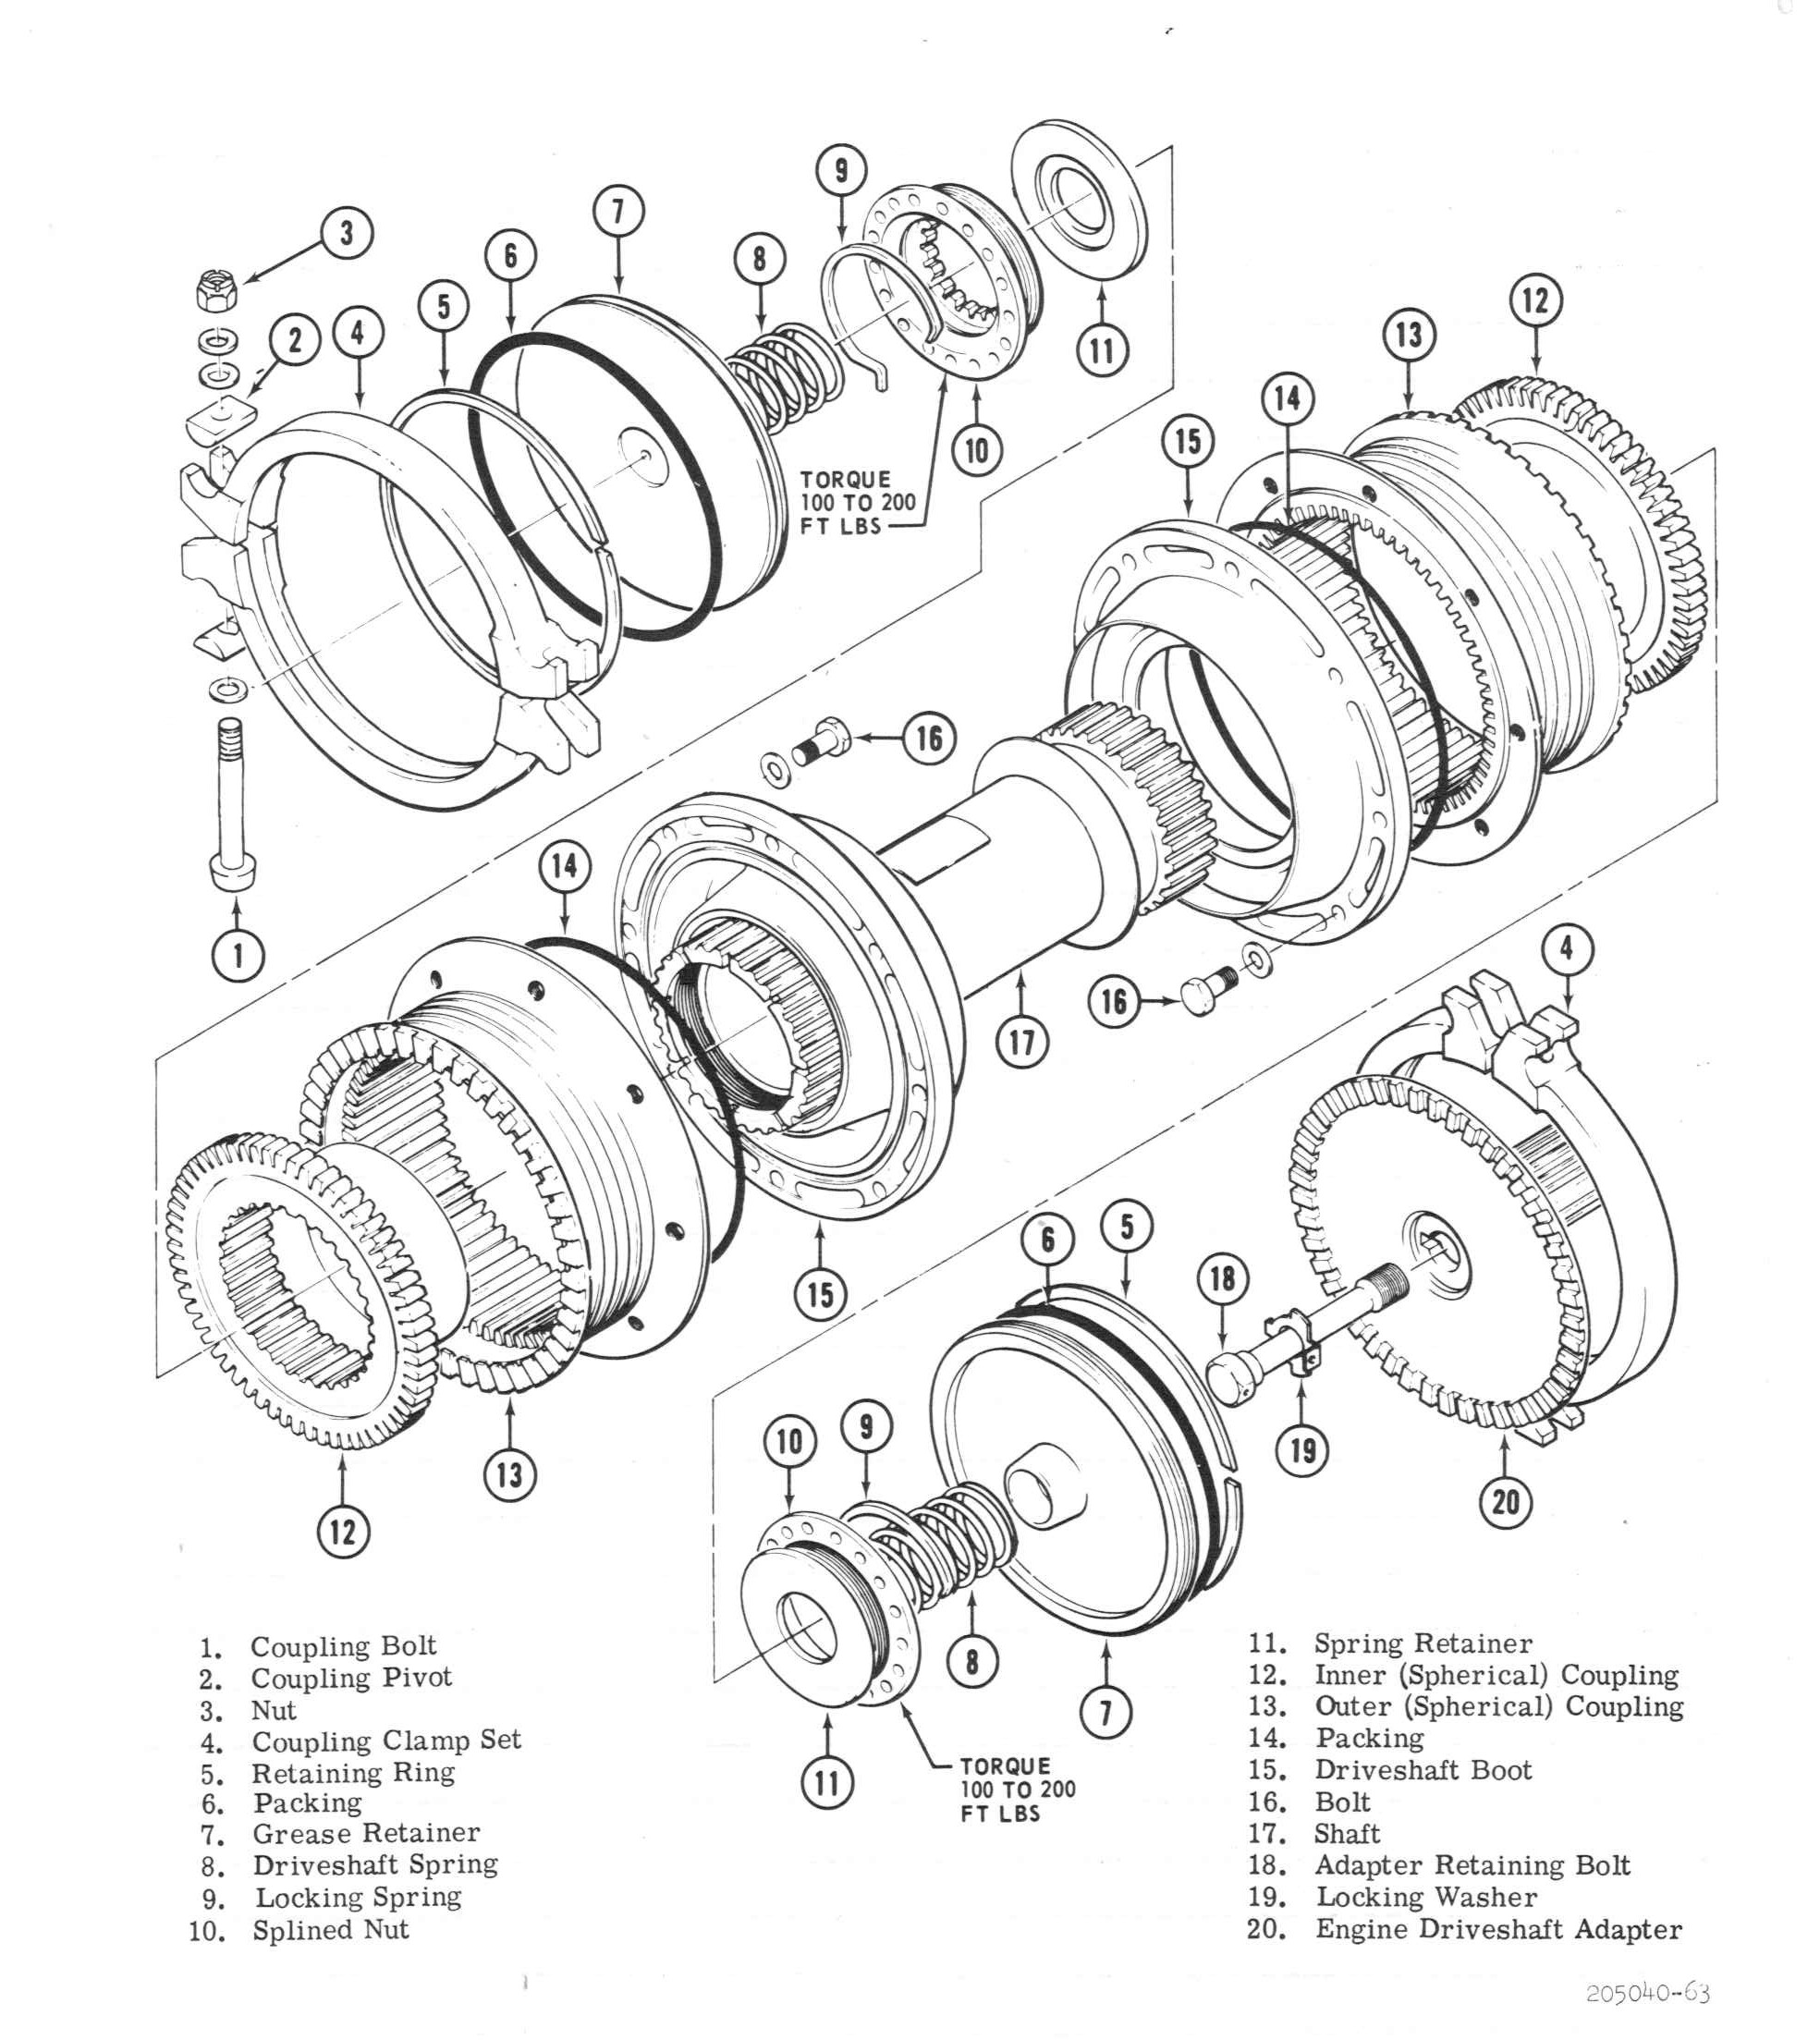 bell model 205a 1 image downloads LR4 Engine Lubrication System Diagram lubrication chart